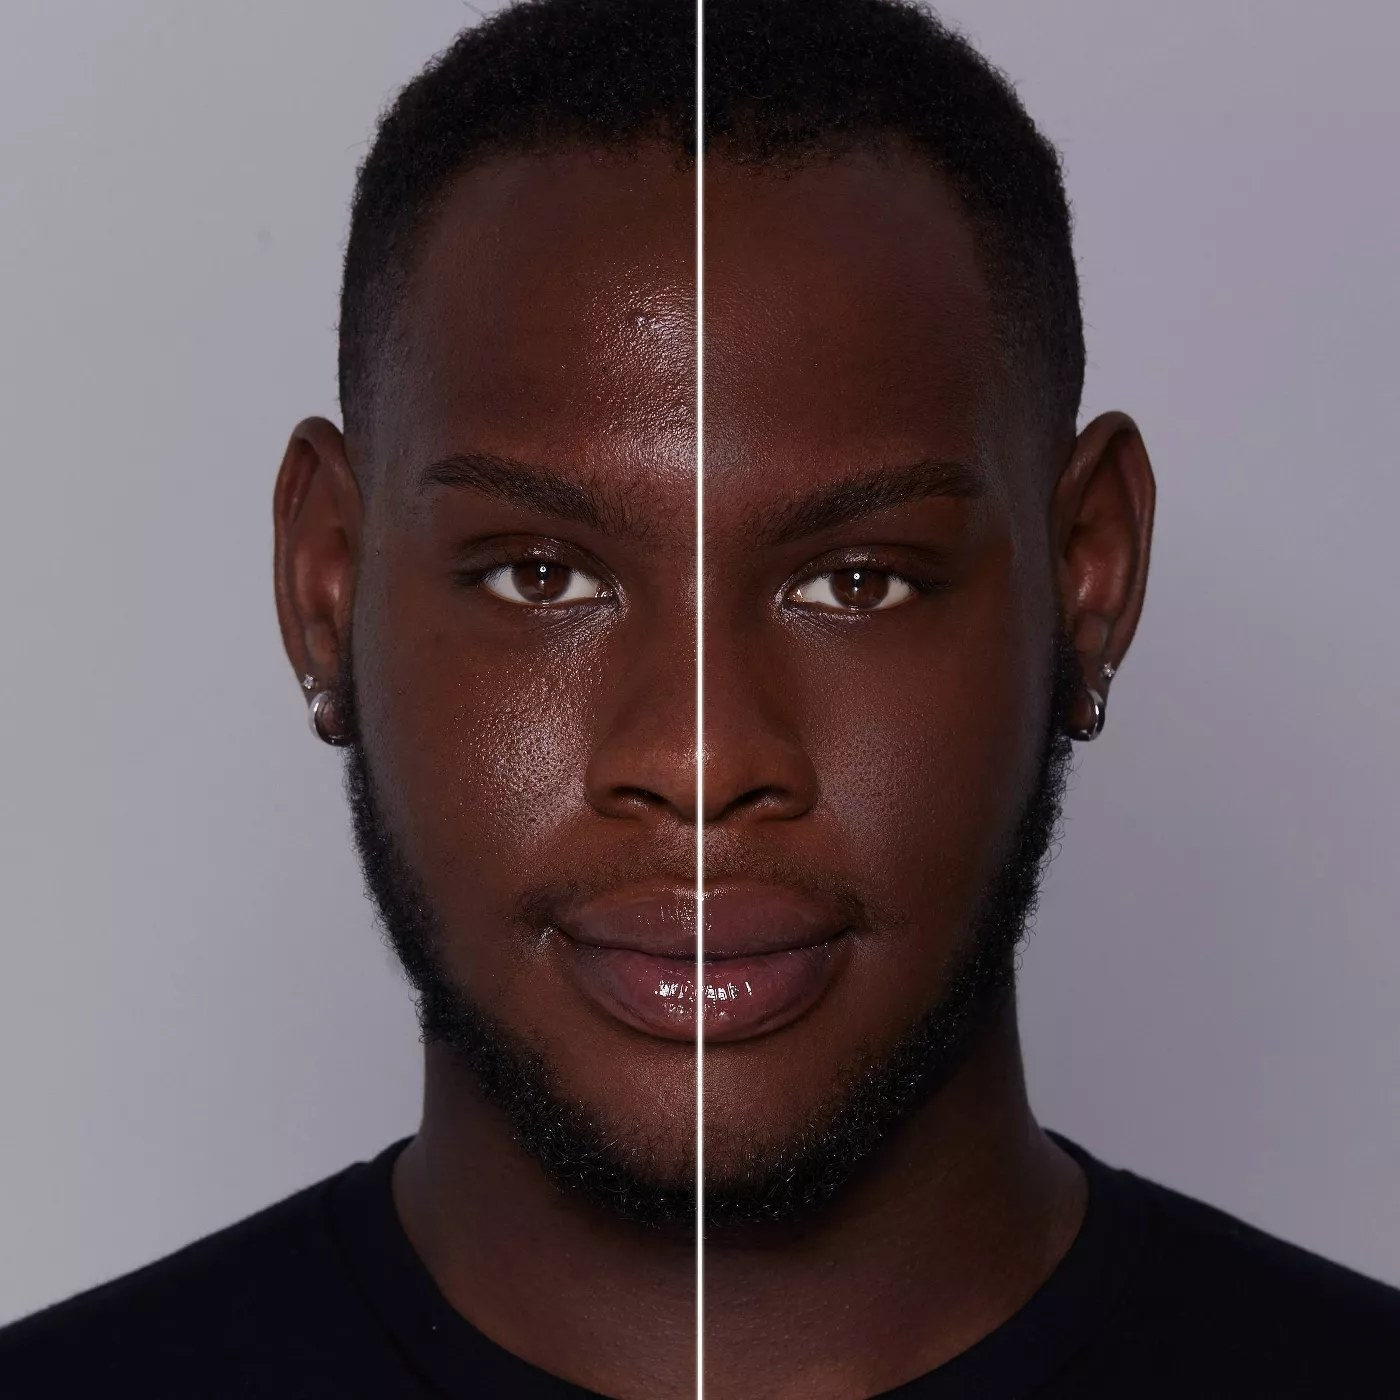 A before and after of a model using the foundation